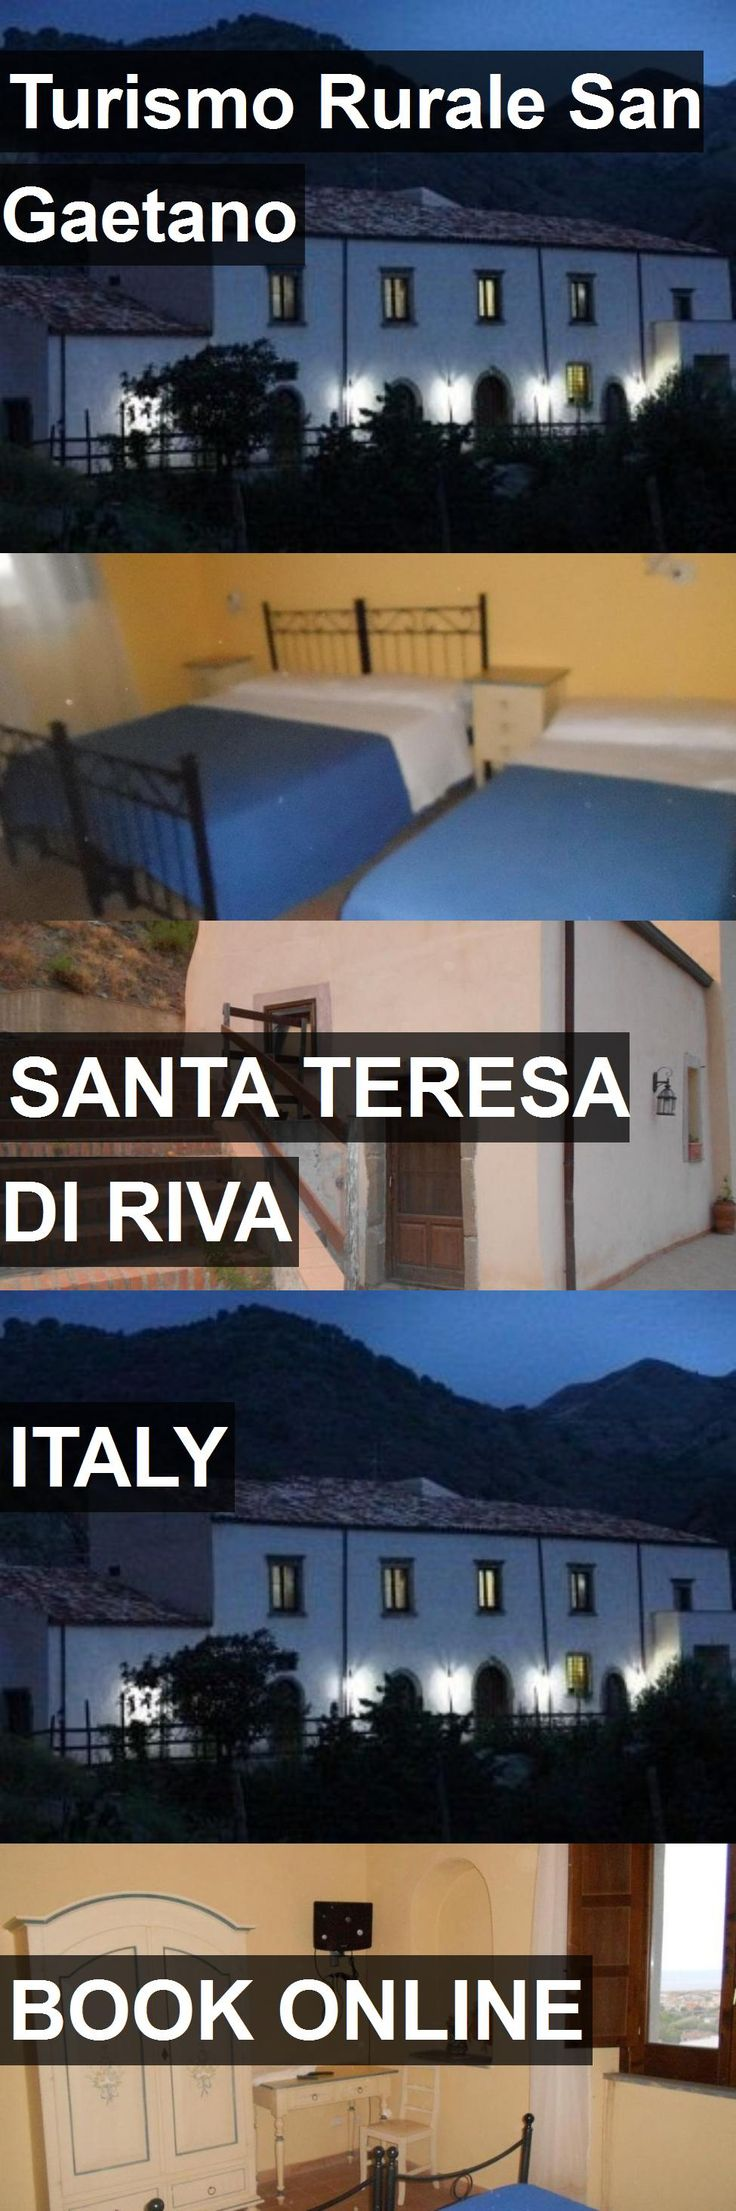 Hotel Turismo Rurale San Gaetano in Santa Teresa di Riva, Italy. For more information, photos, reviews and best prices please follow the link. #Italy #SantaTeresadiRiva #hotel #travel #vacation